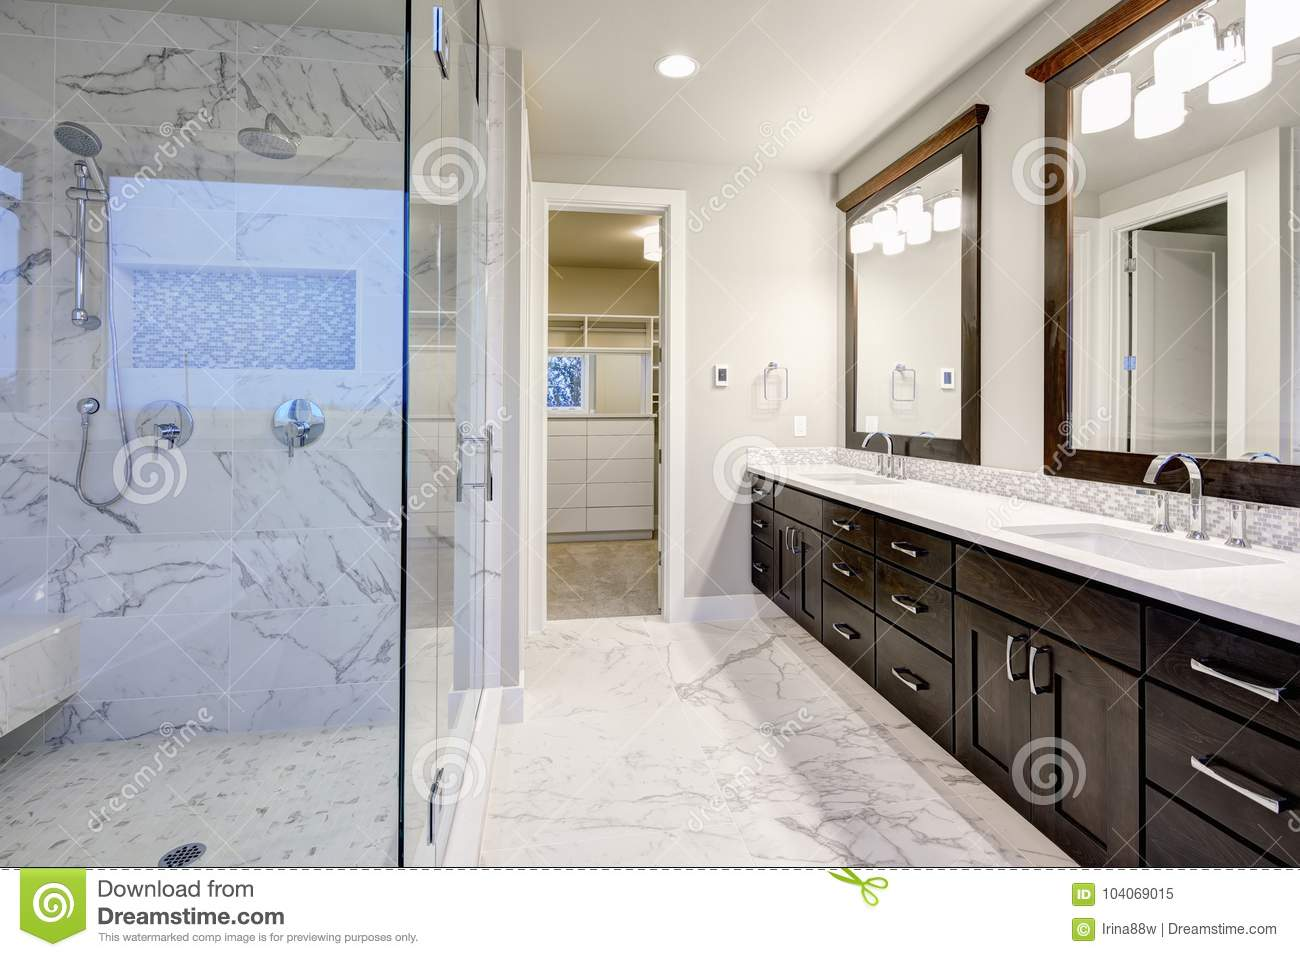 Master Bathroom Interior With Double Vanity Cabinet Stock Image Image Of Bath Project 104069015